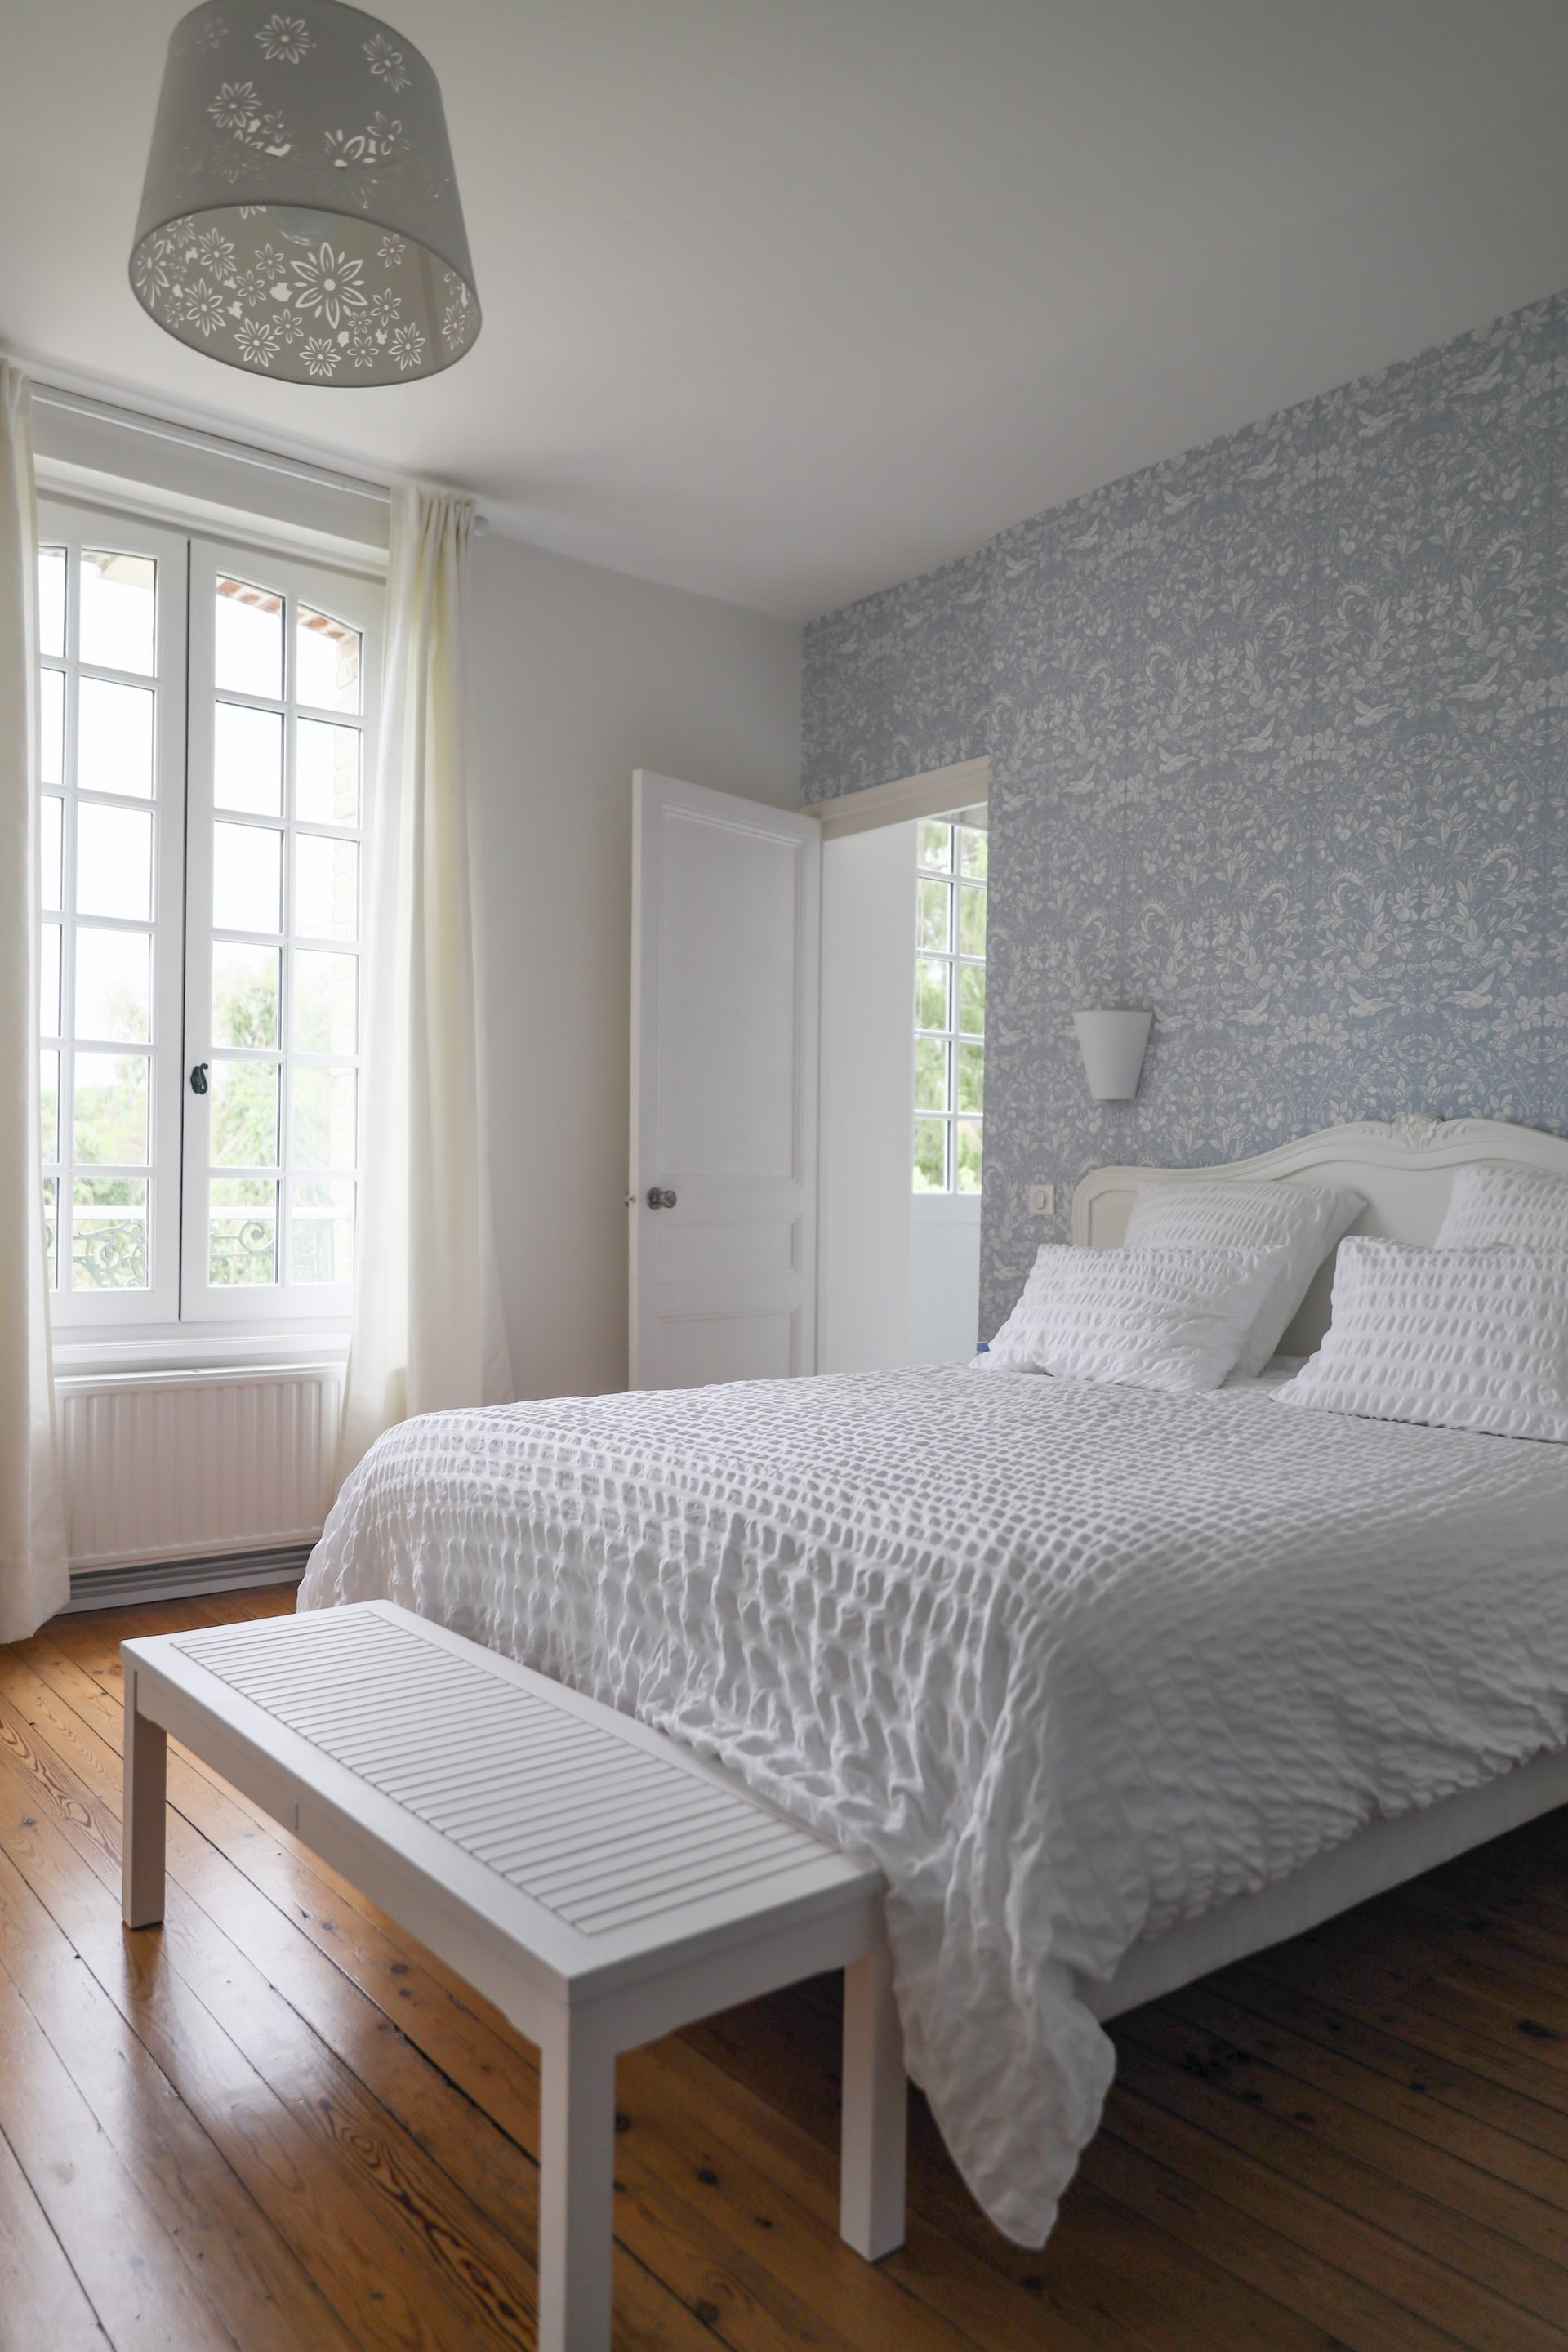 Double bed in a bedroom and pattern wallpaper